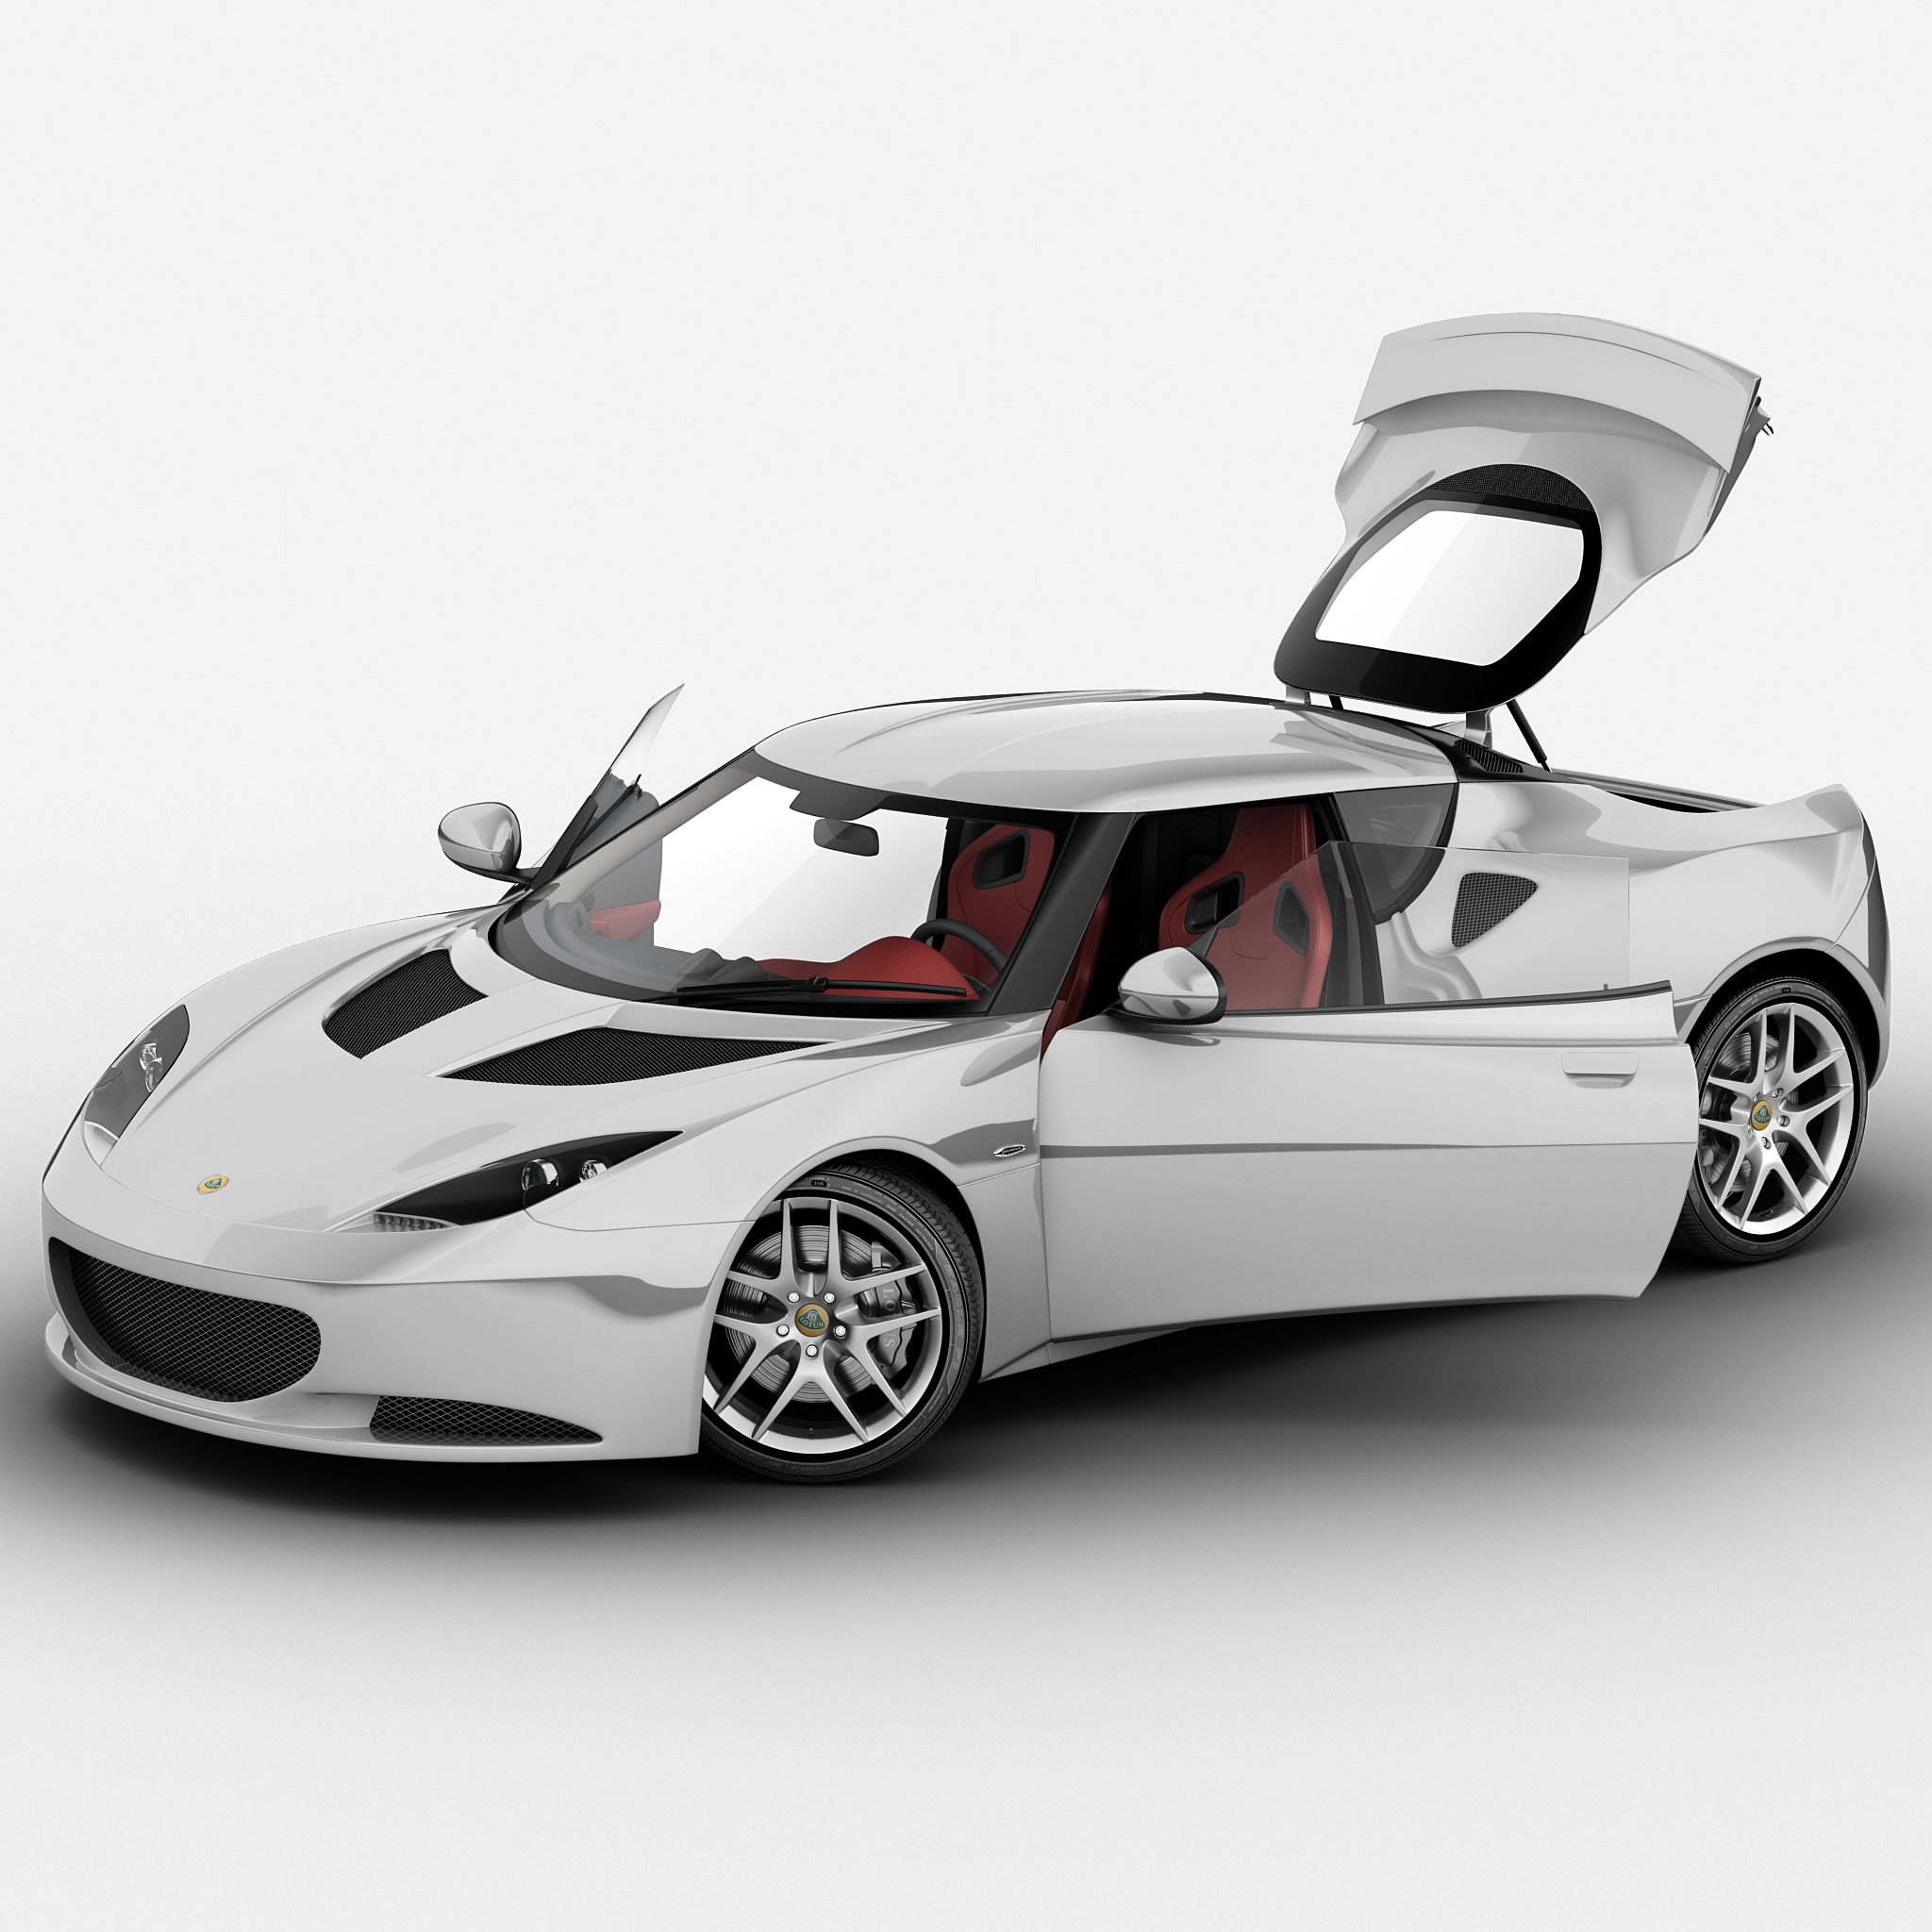 Lotus Evora S 2013 Rigged_28.jpg